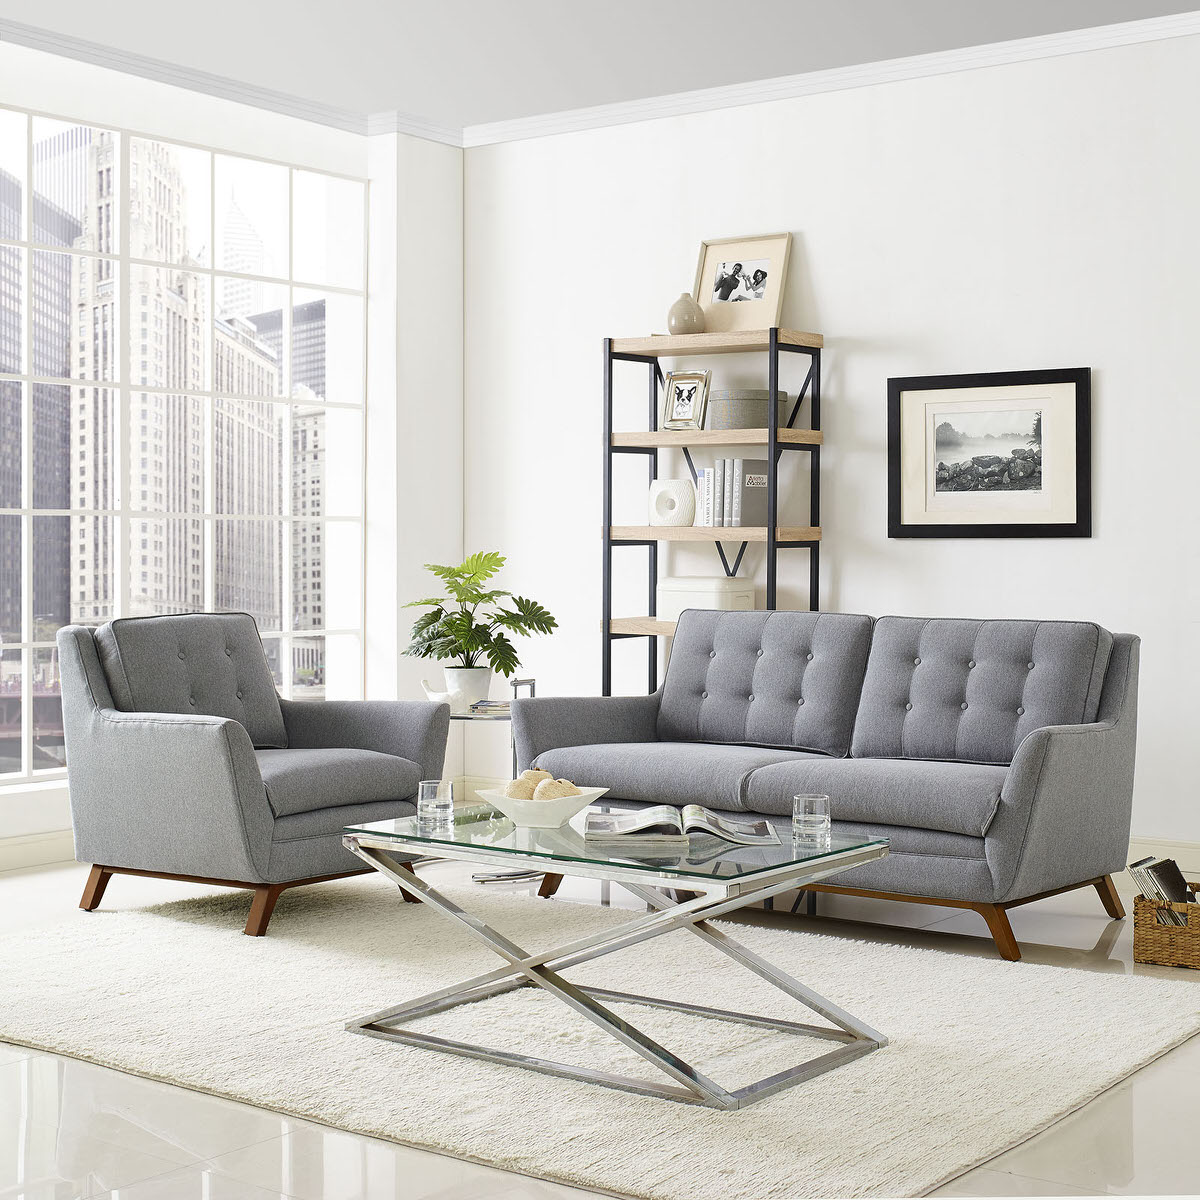 Beguile Living Room Set Upholstered Fabric Set of 2 Expectation Gray ...